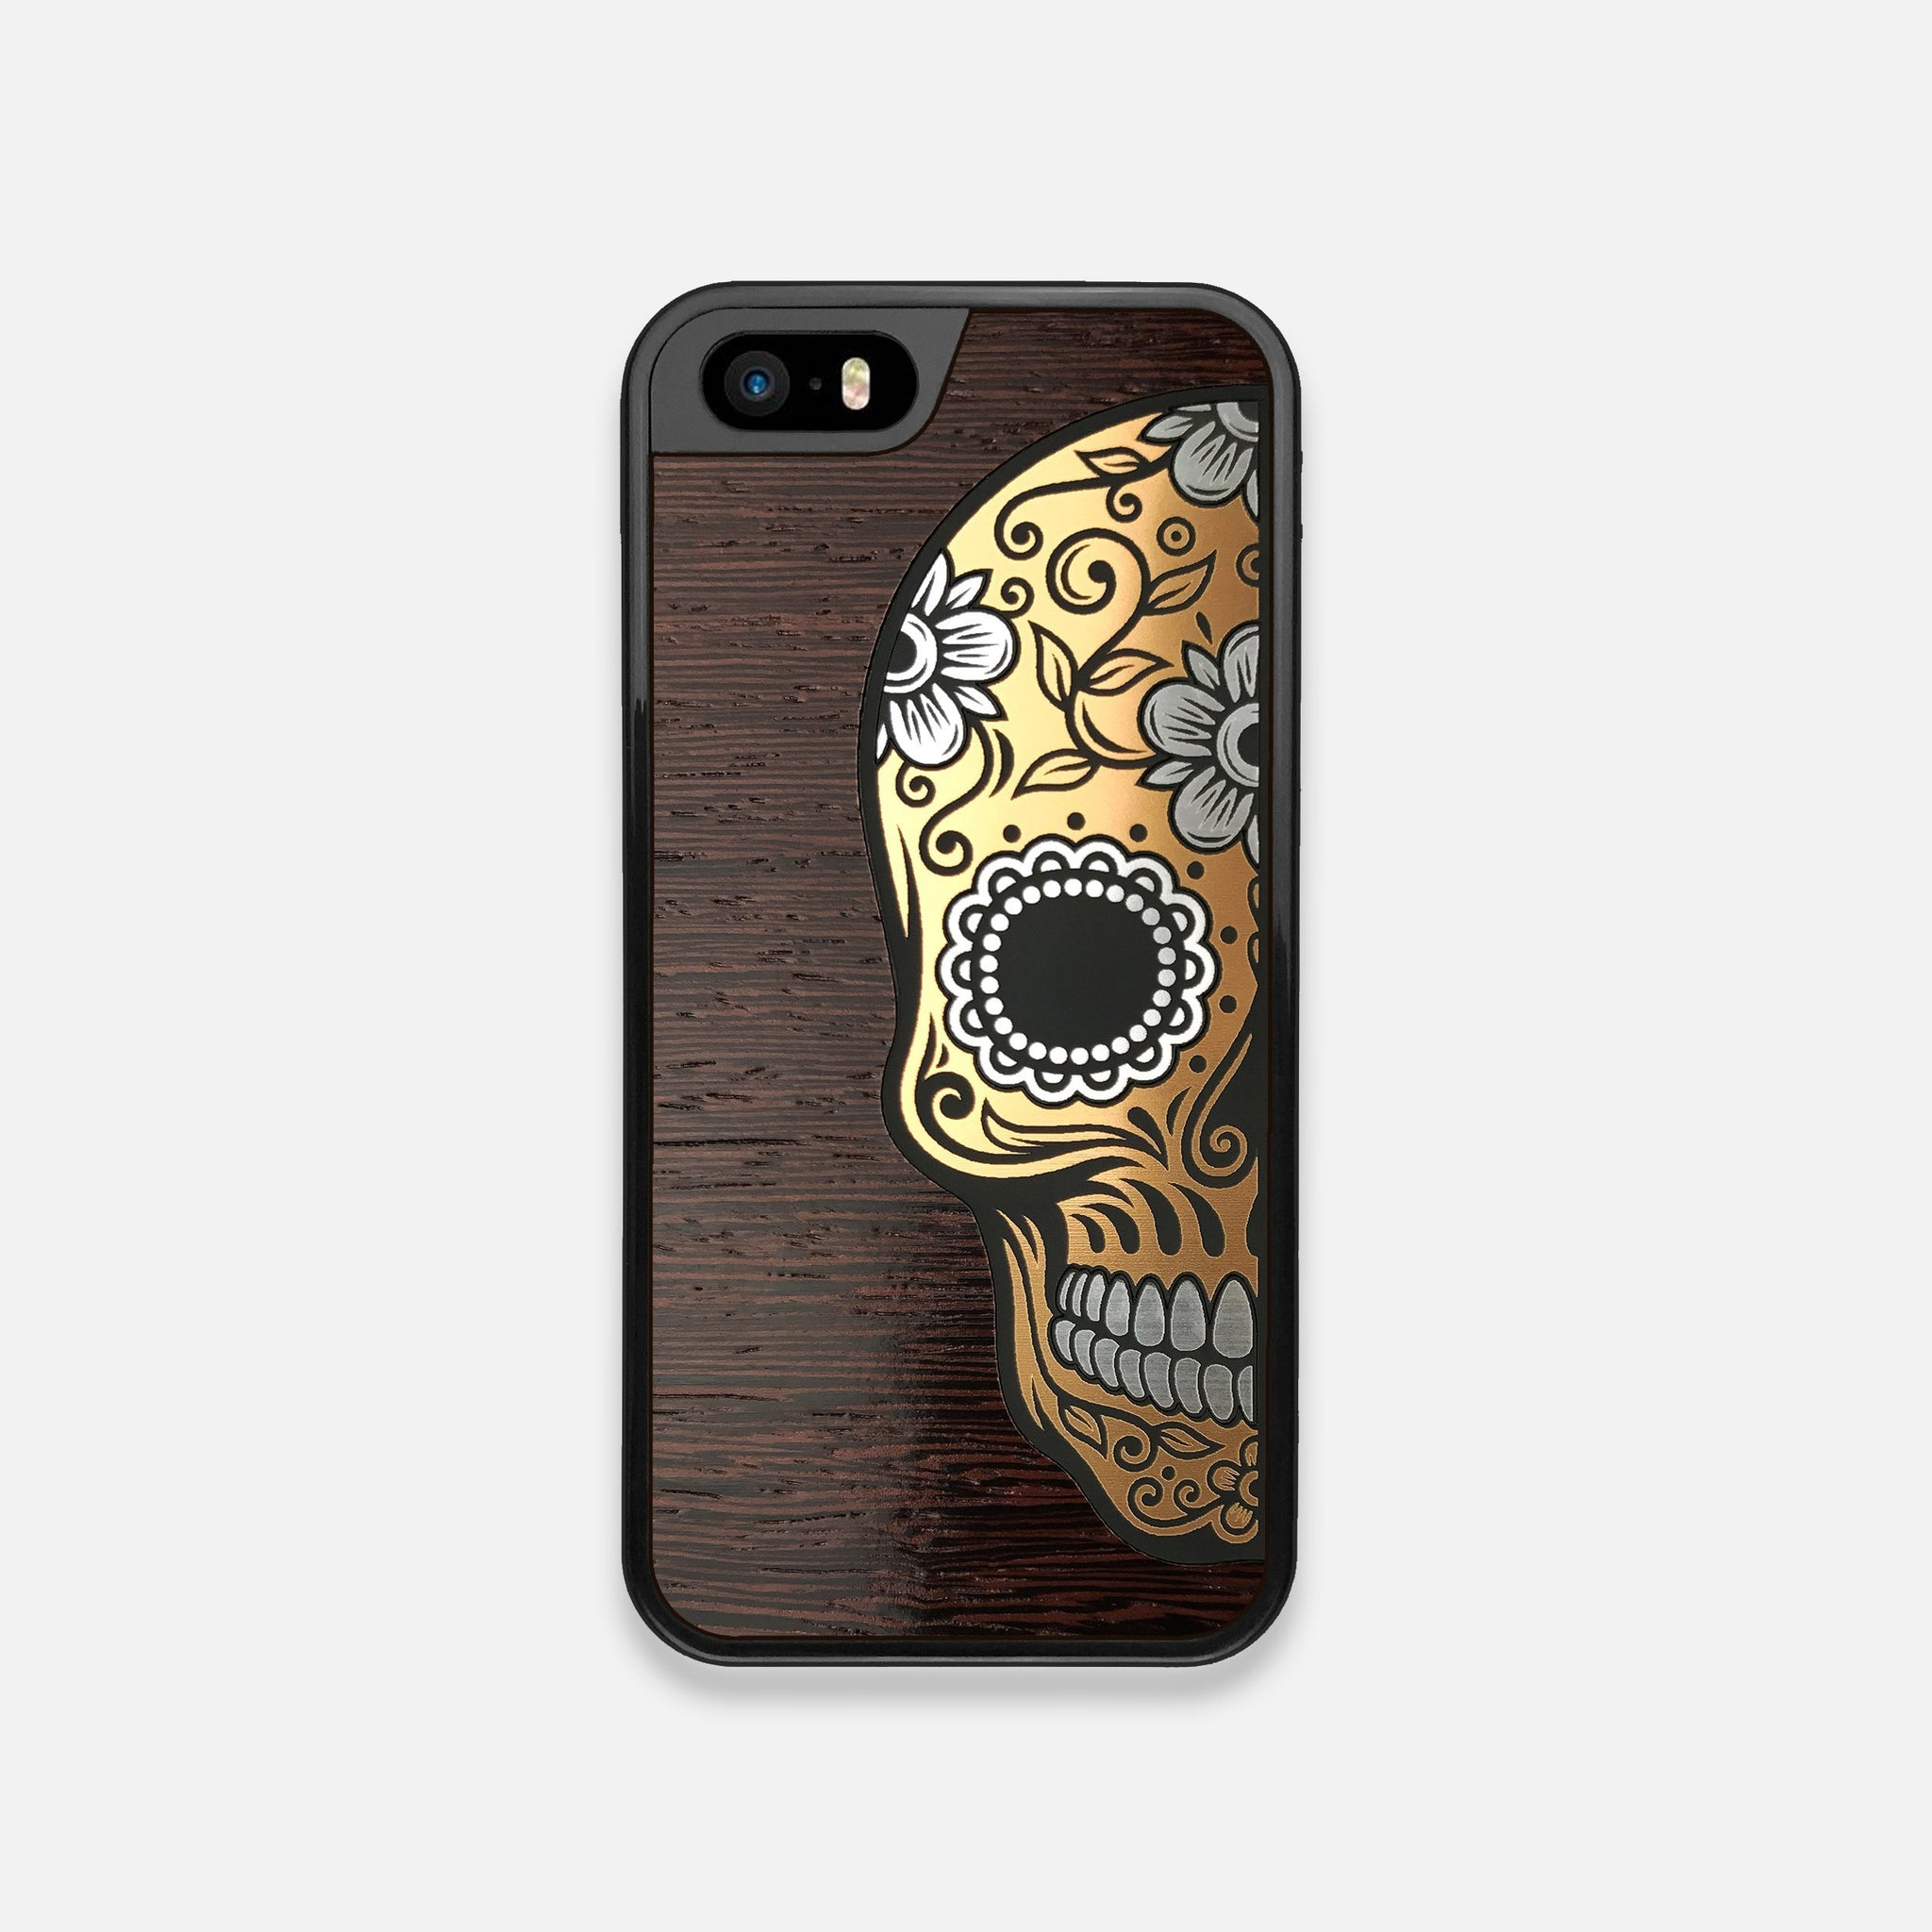 Front view of the Calavera Wood Sugar Skull Wood iPhone 5 Case by Keyway Designs